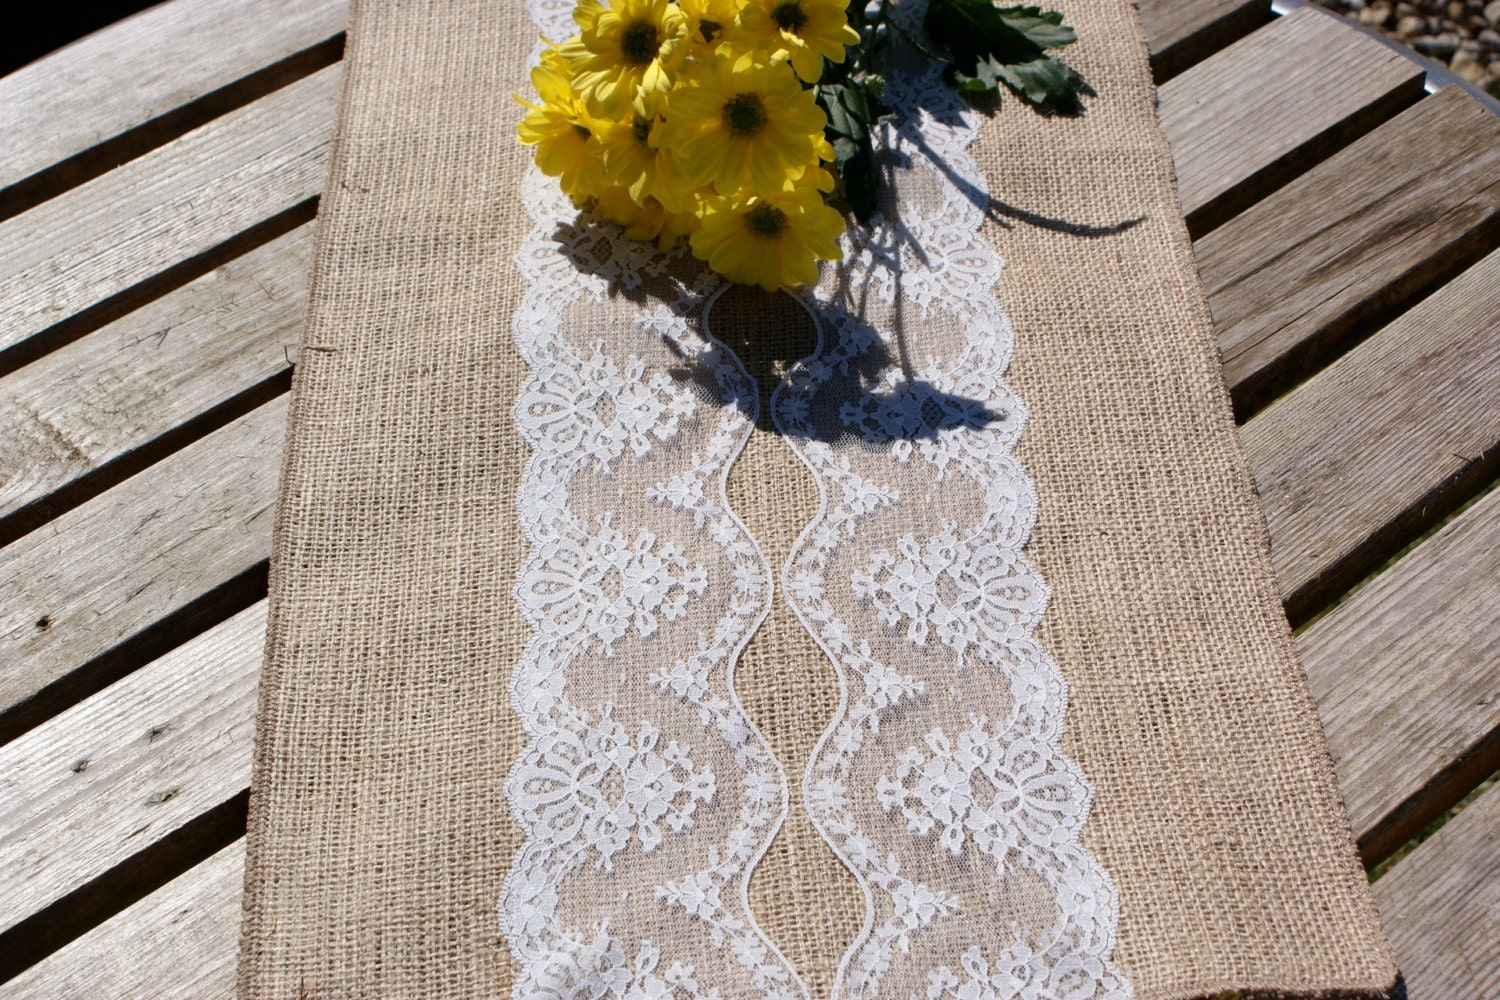 Burlap and Ivory lace table runner by Littlewhiteboutique on Etsy